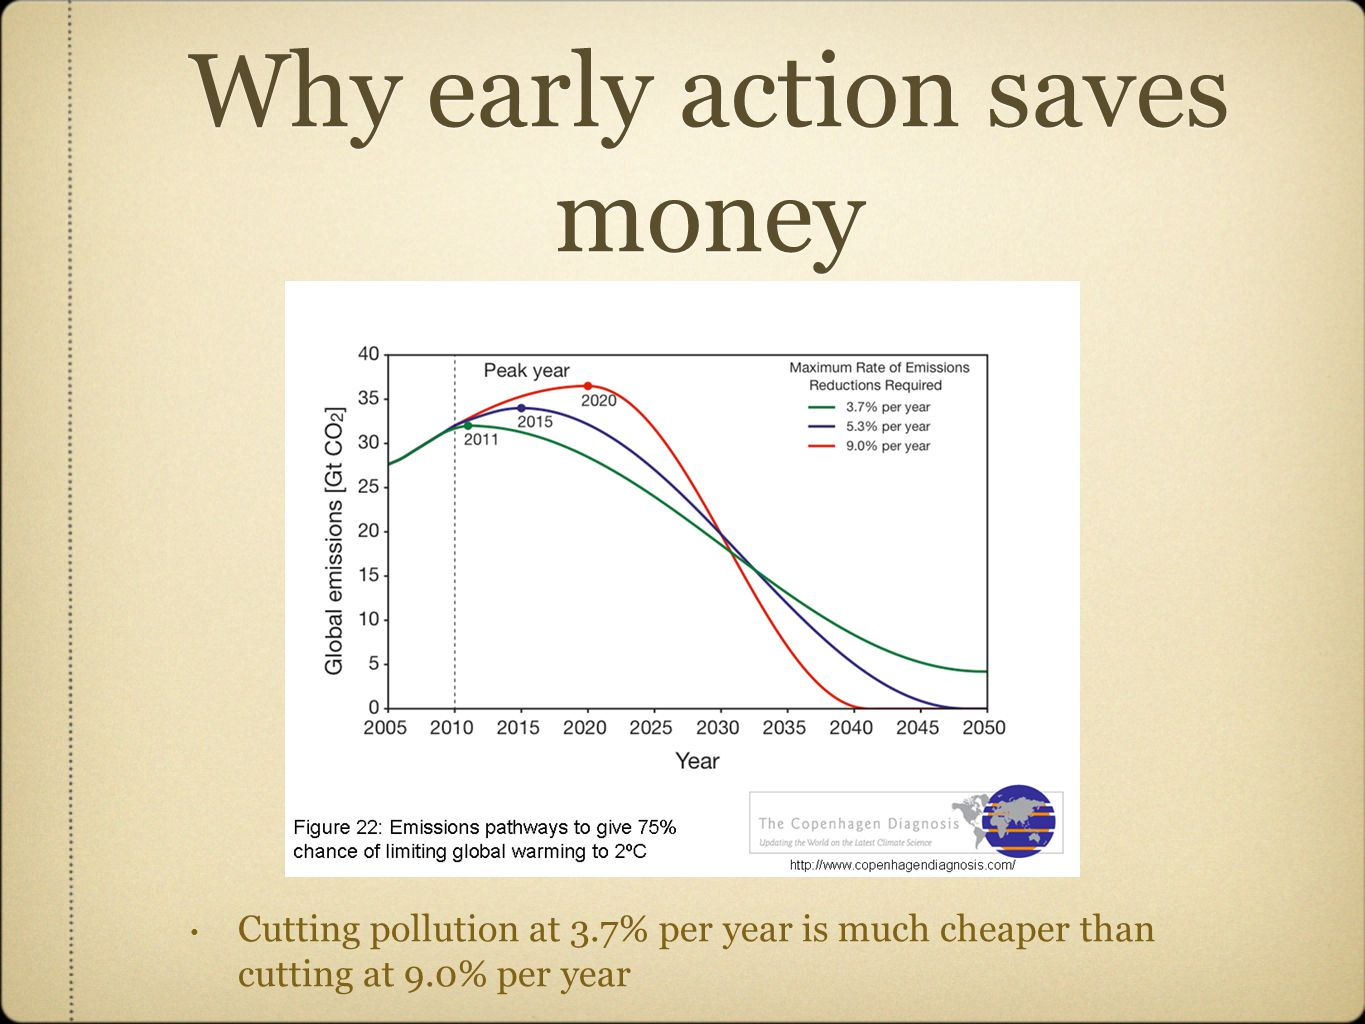 Why early action saves money Cutting pollution at 3.7% per year is much cheaper than cutting at 9.0% per year